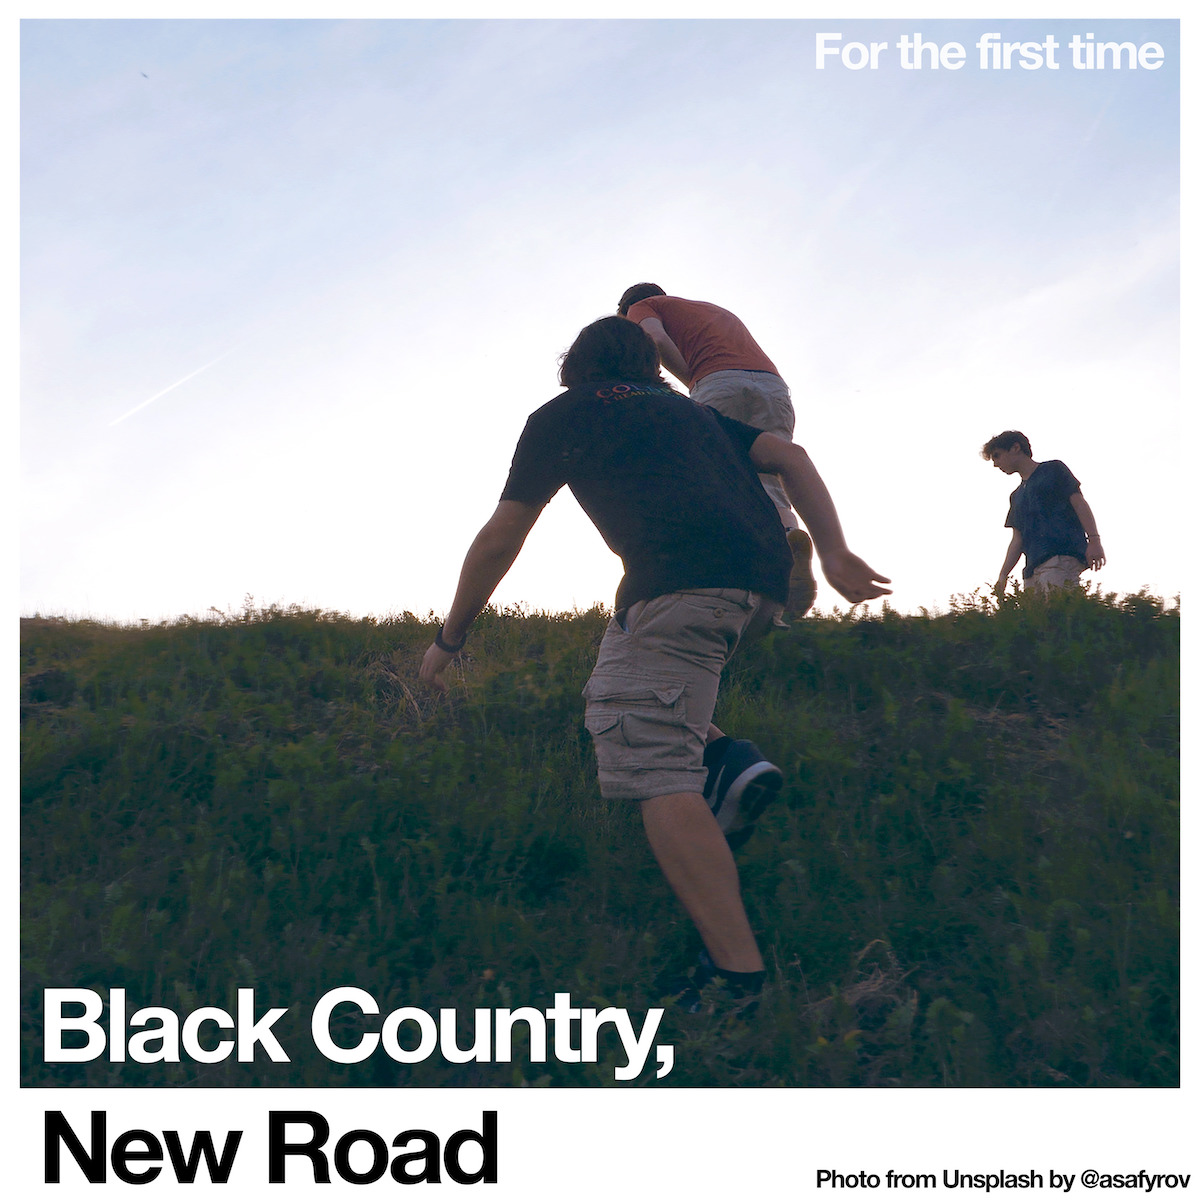 black country new road for the first time album cover artwork science fair